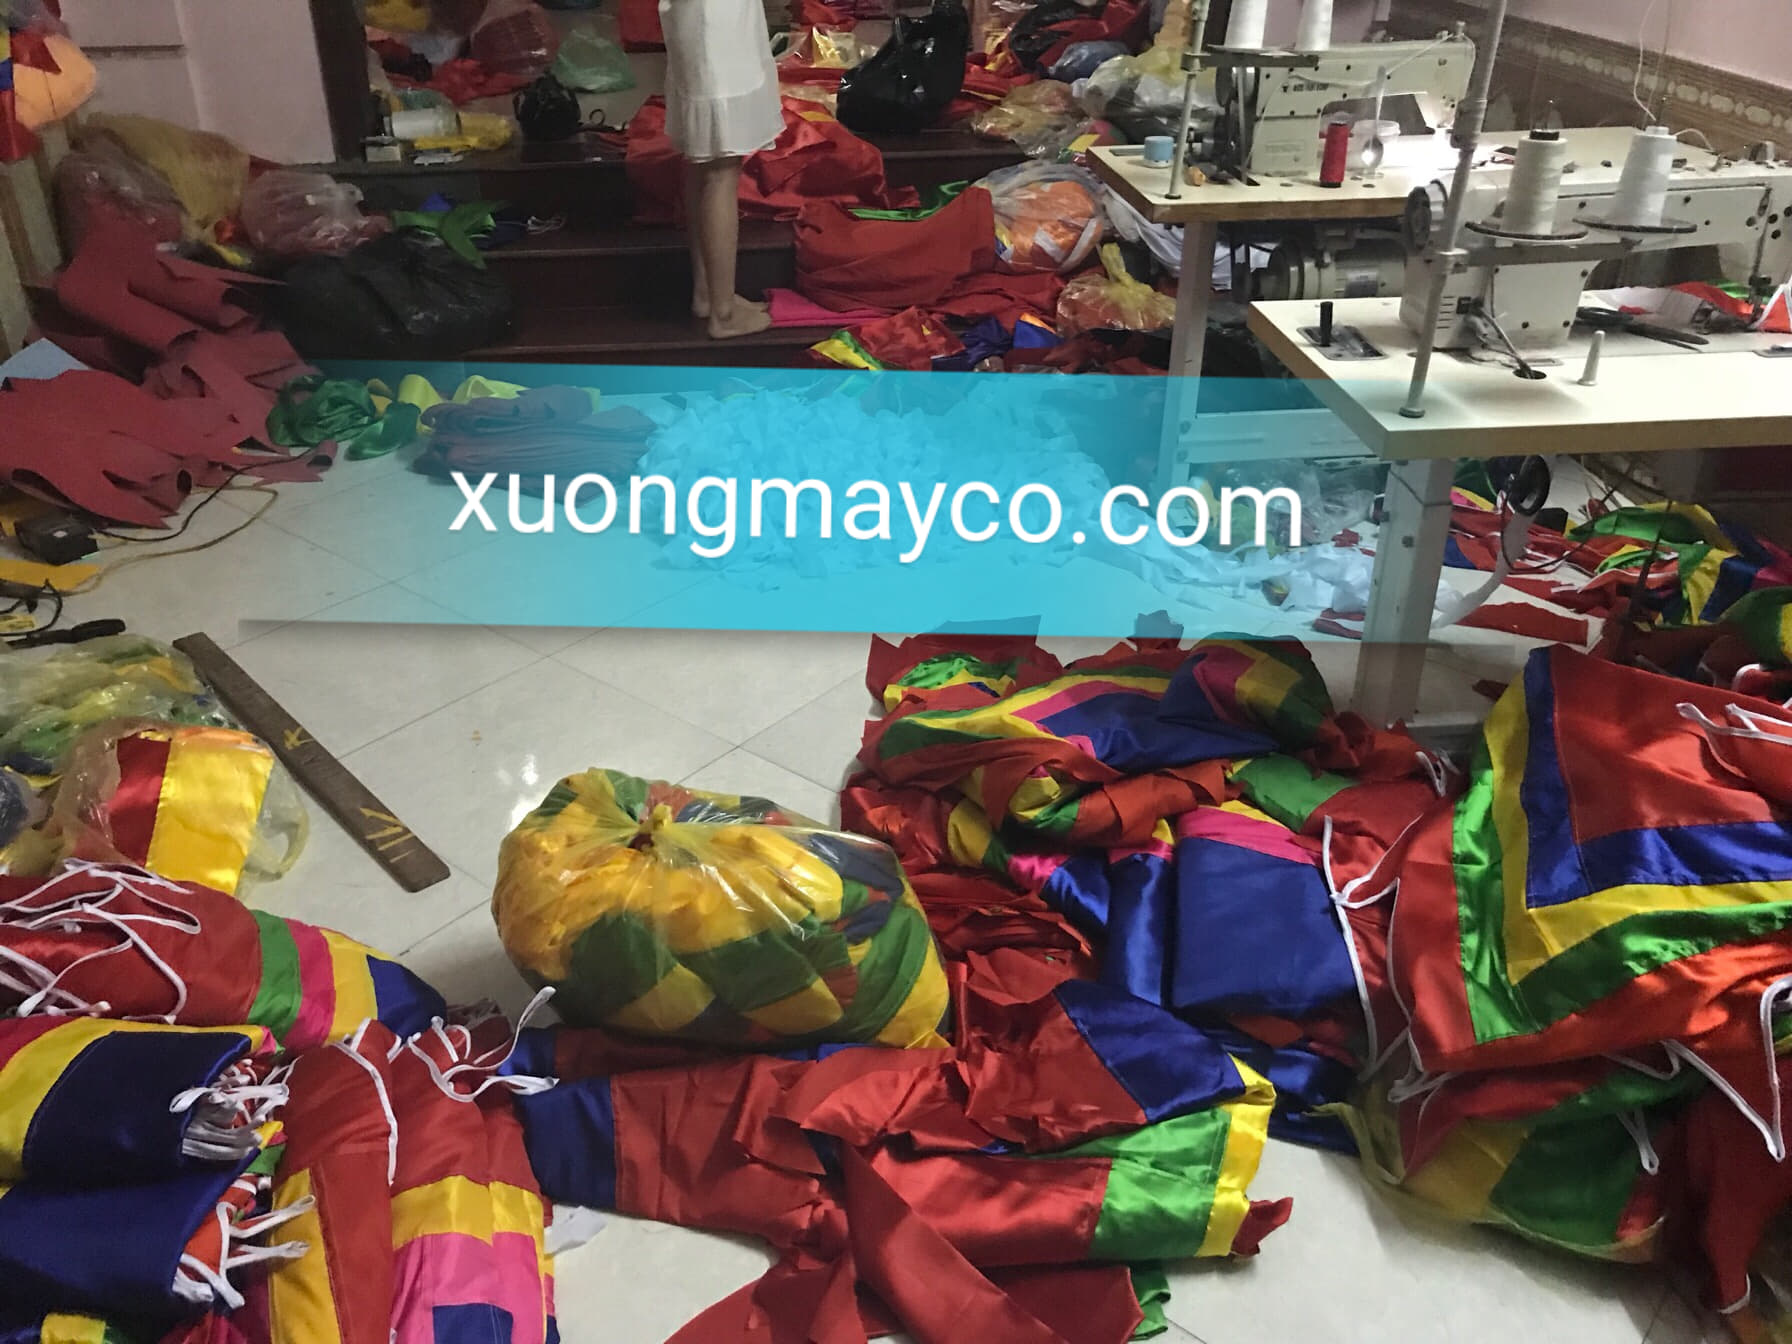 xuong-may-co-ngu-sac-10